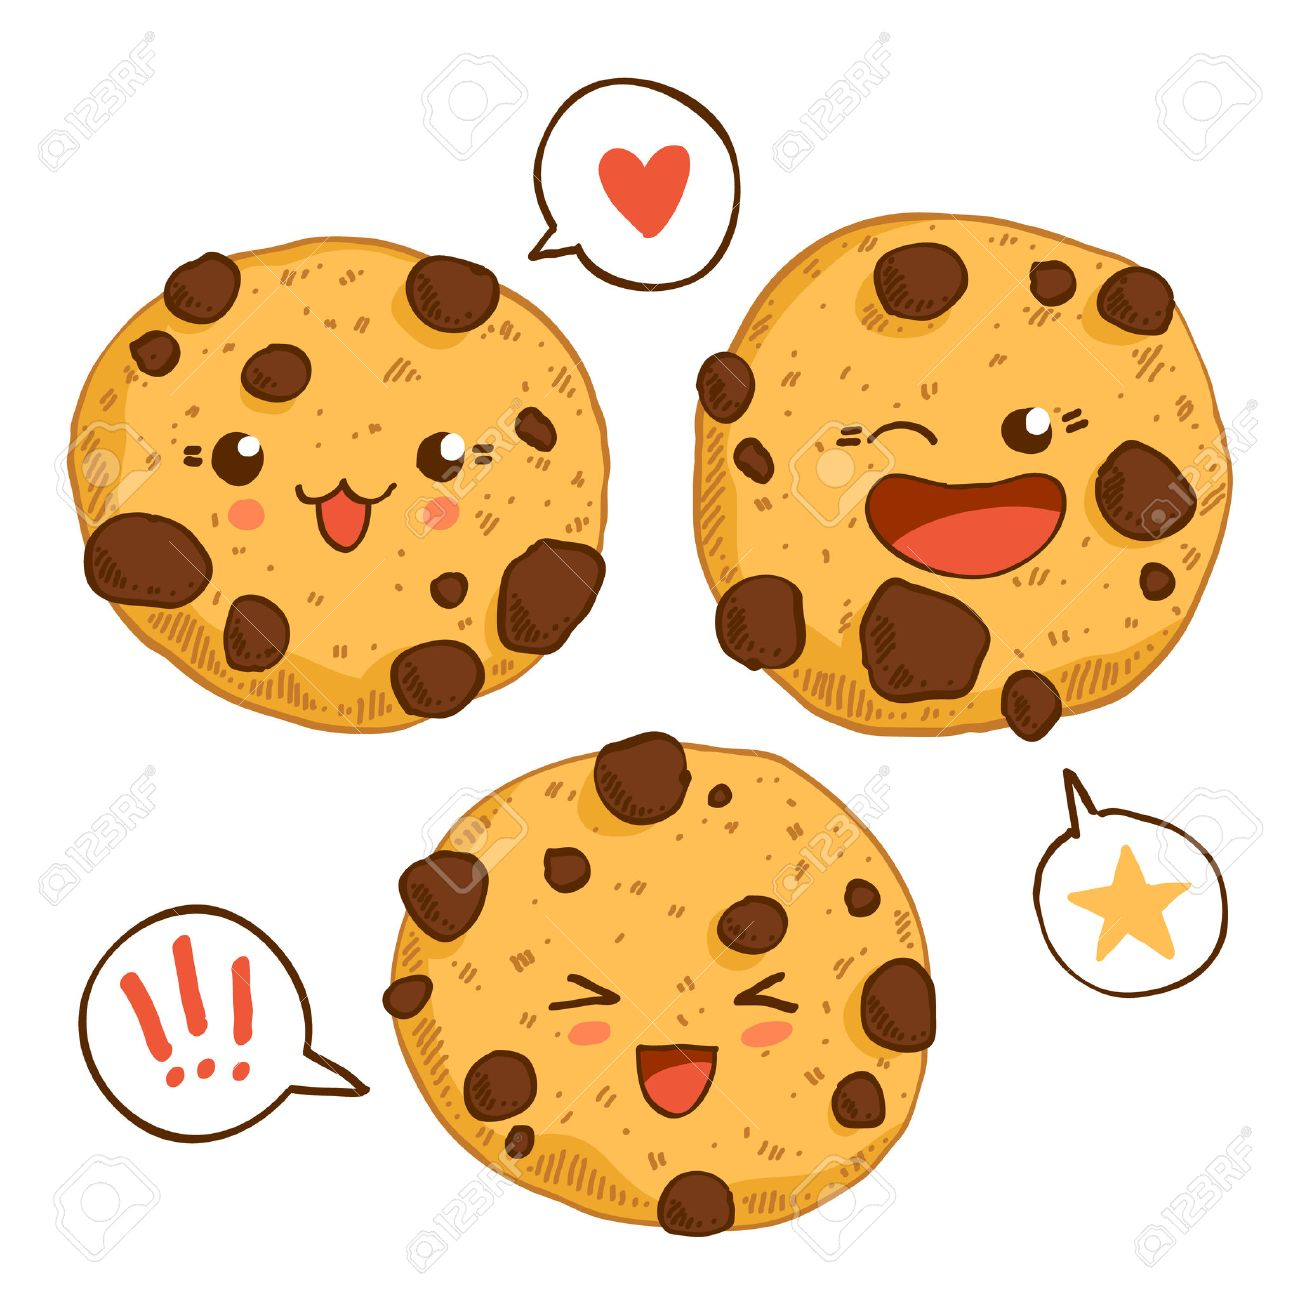 Group of three cute kawaii cookies with chocolste chips. Good for t-shirt design. - 35826652